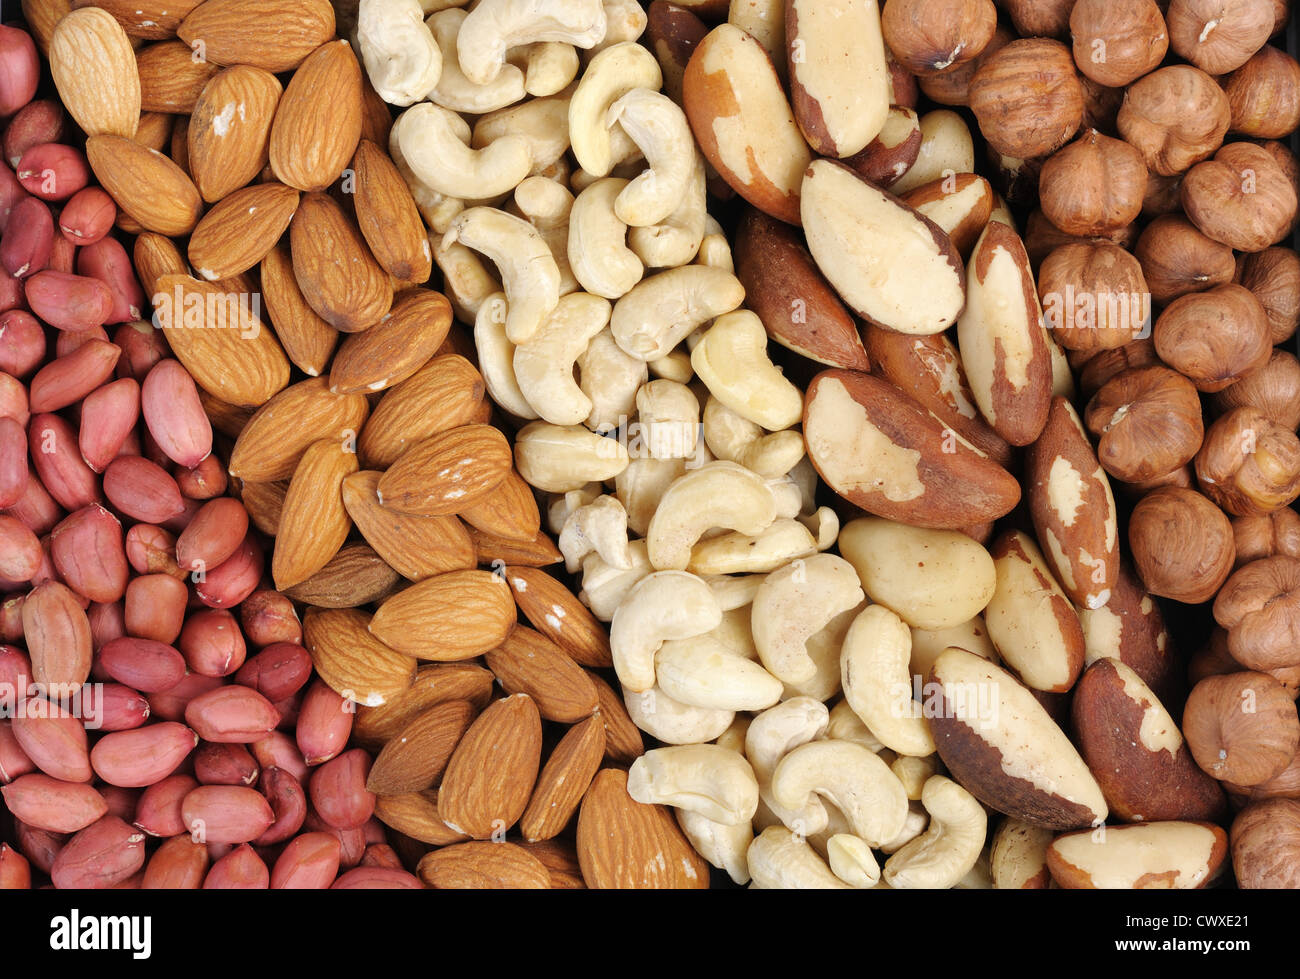 Are Brazil Nuts The Next Almonds